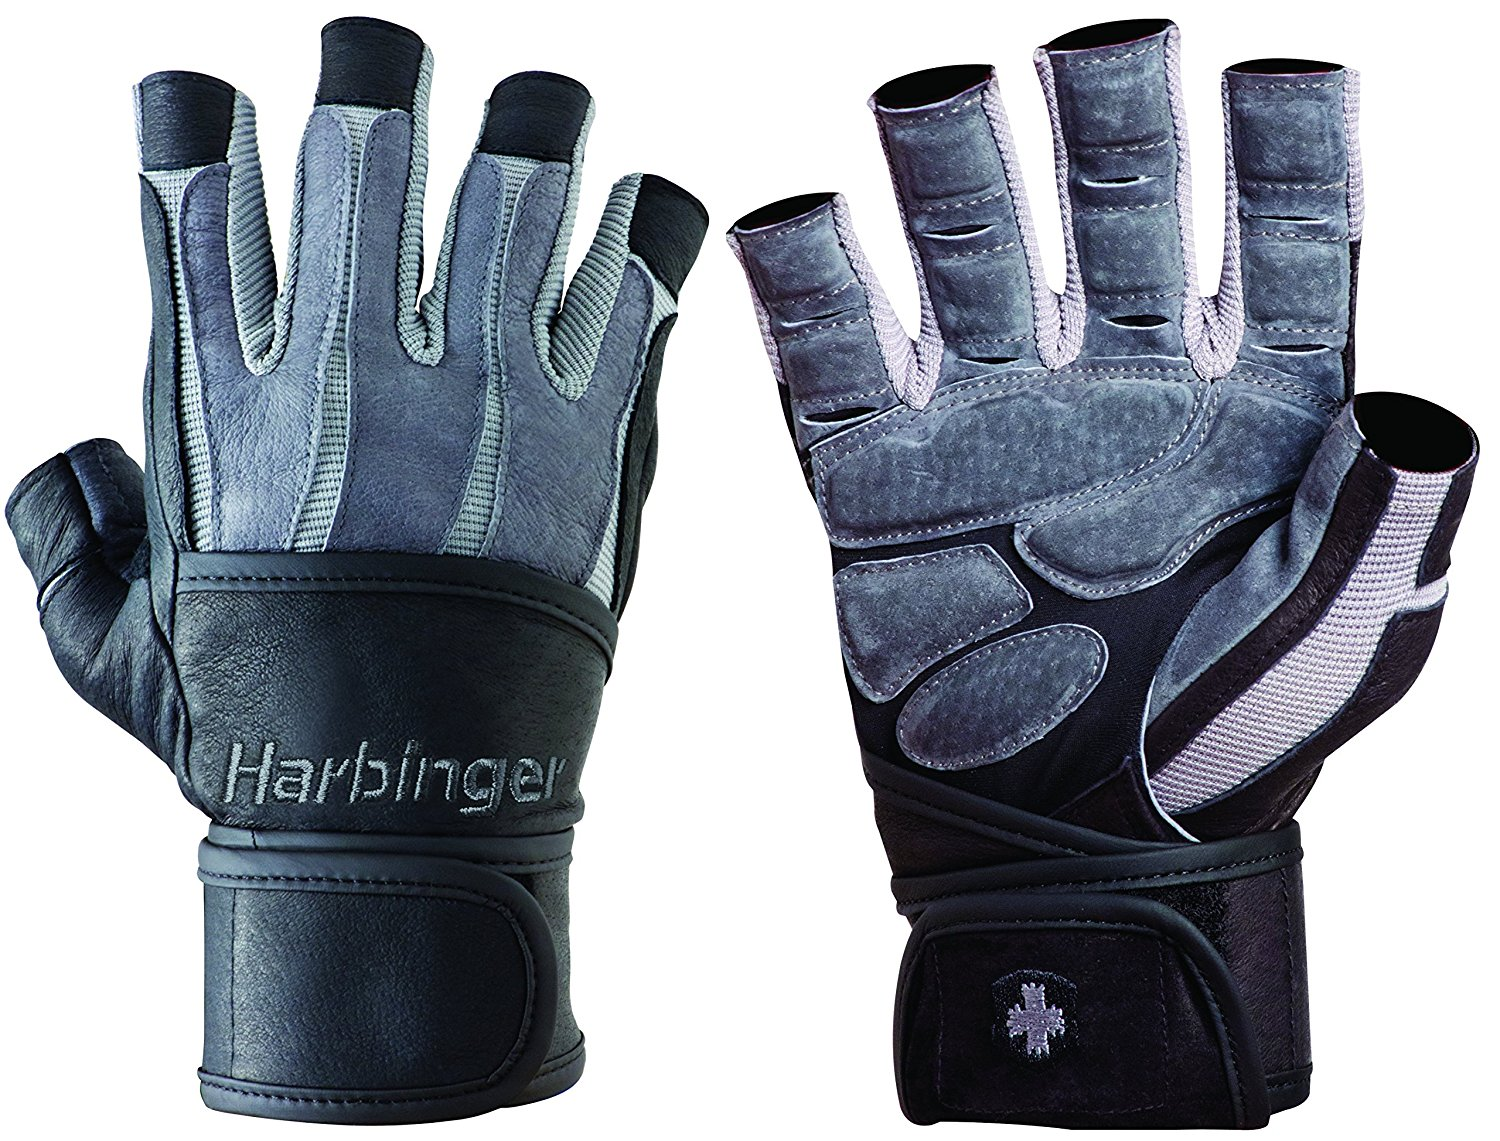 pics The 7 Best Weightlifting Gloves to Buy in 2019